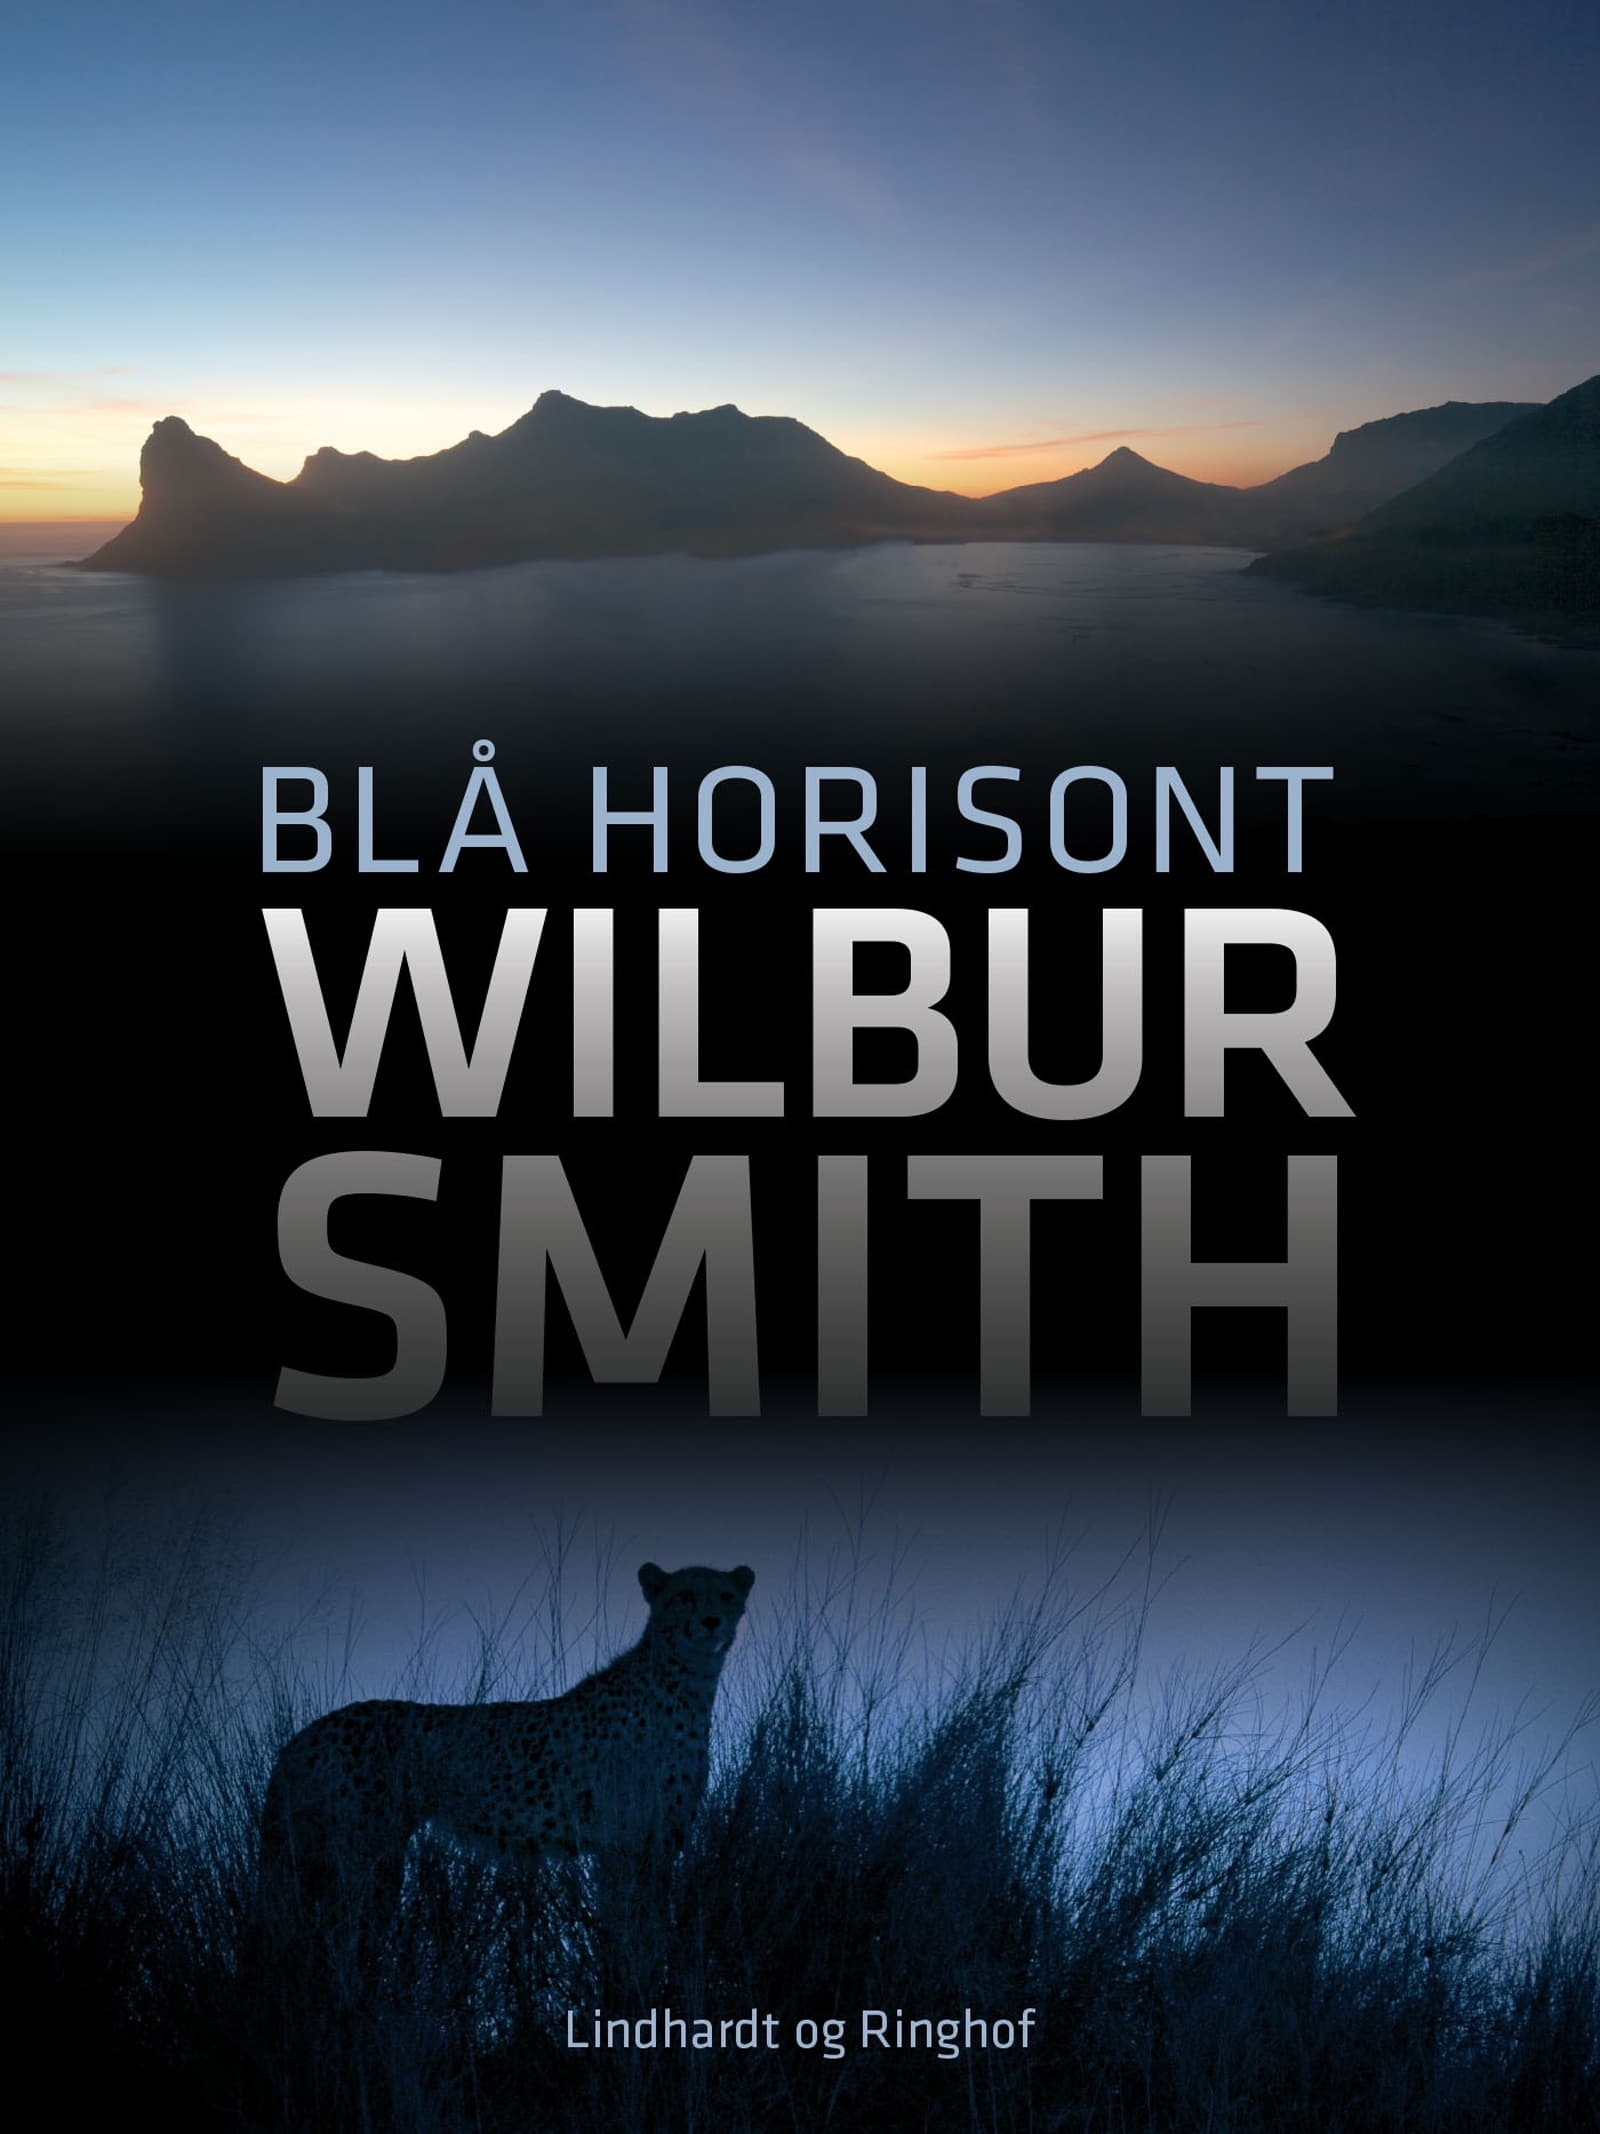 Blå horisont, Wilbur Smith, Courtney-serien